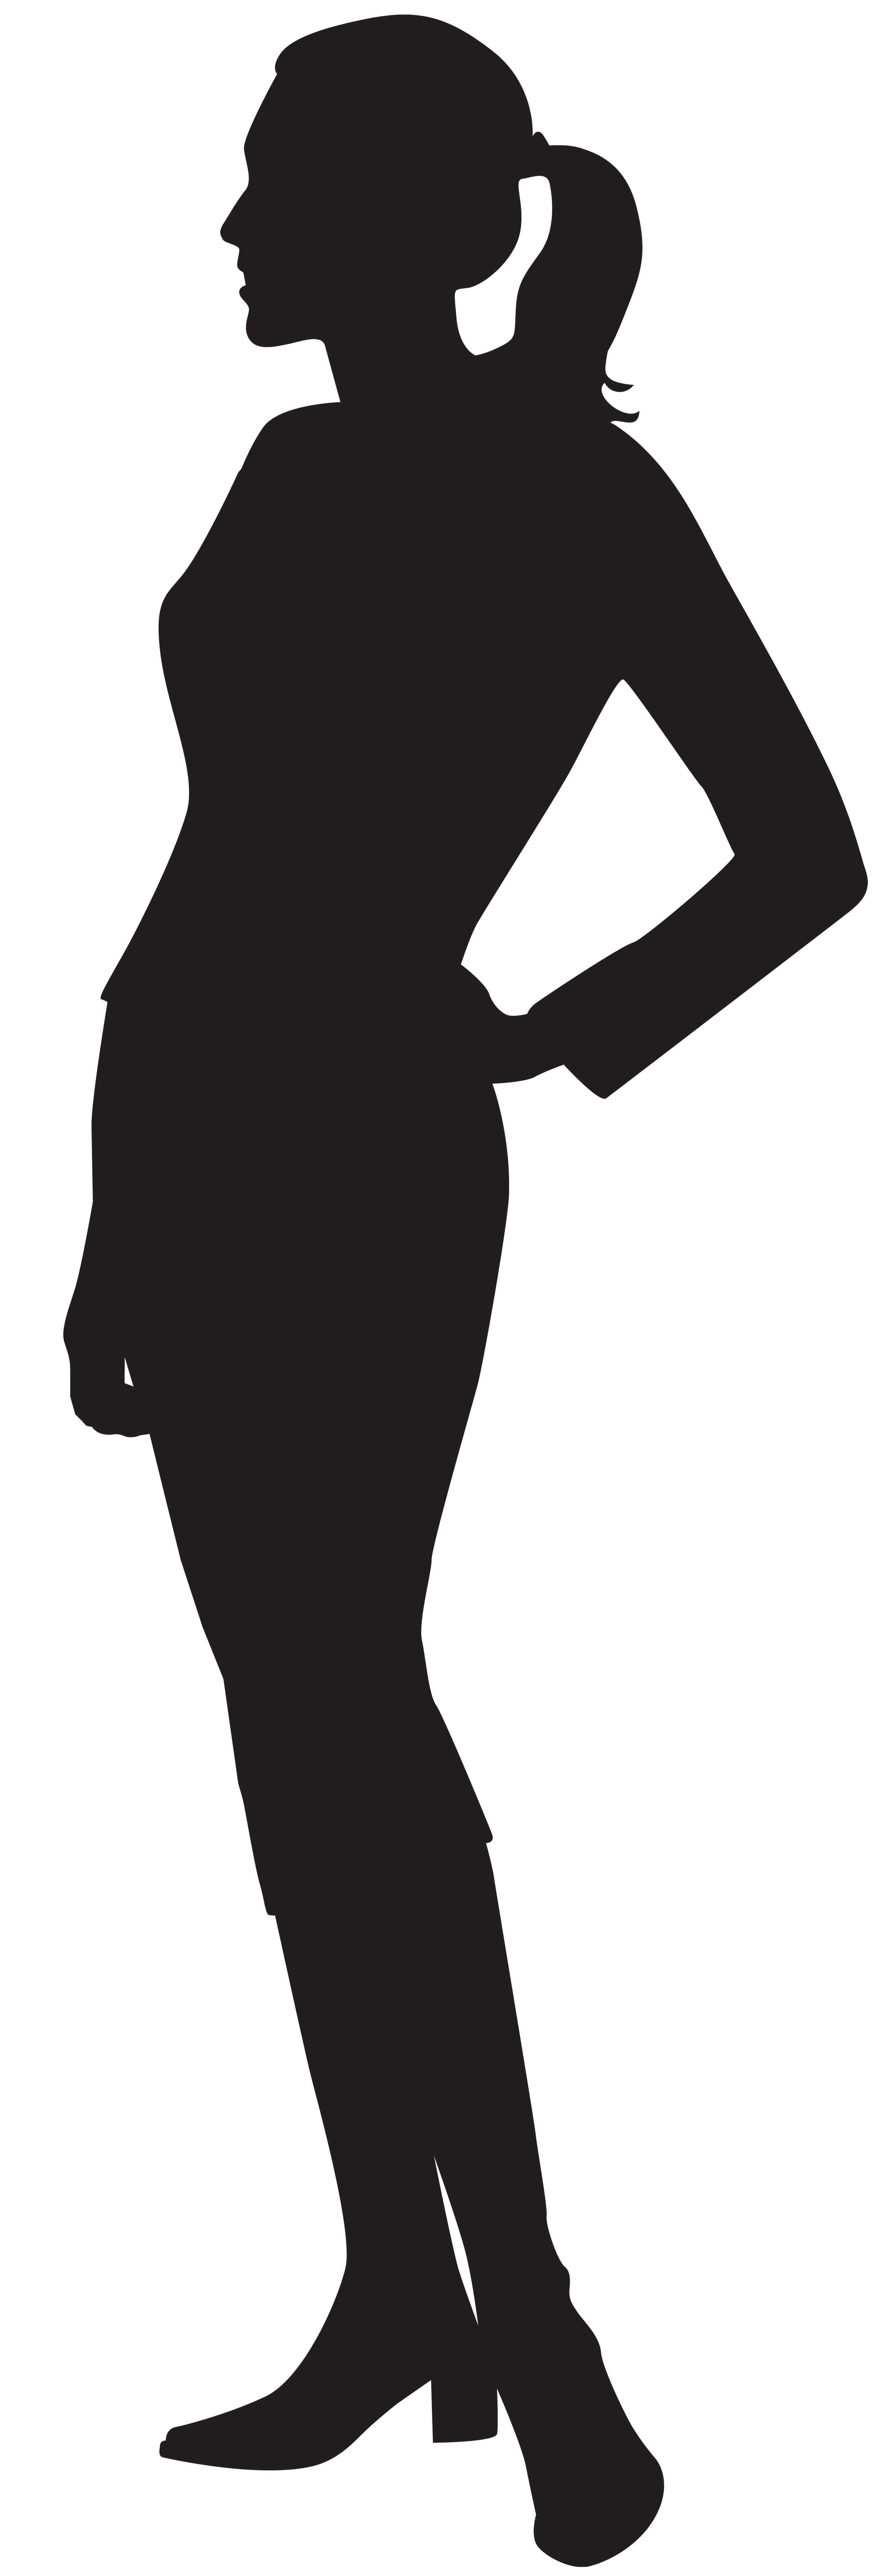 2716x8000 Female Silhouette Clip Art Png Imageu200b Gallery Yopriceville